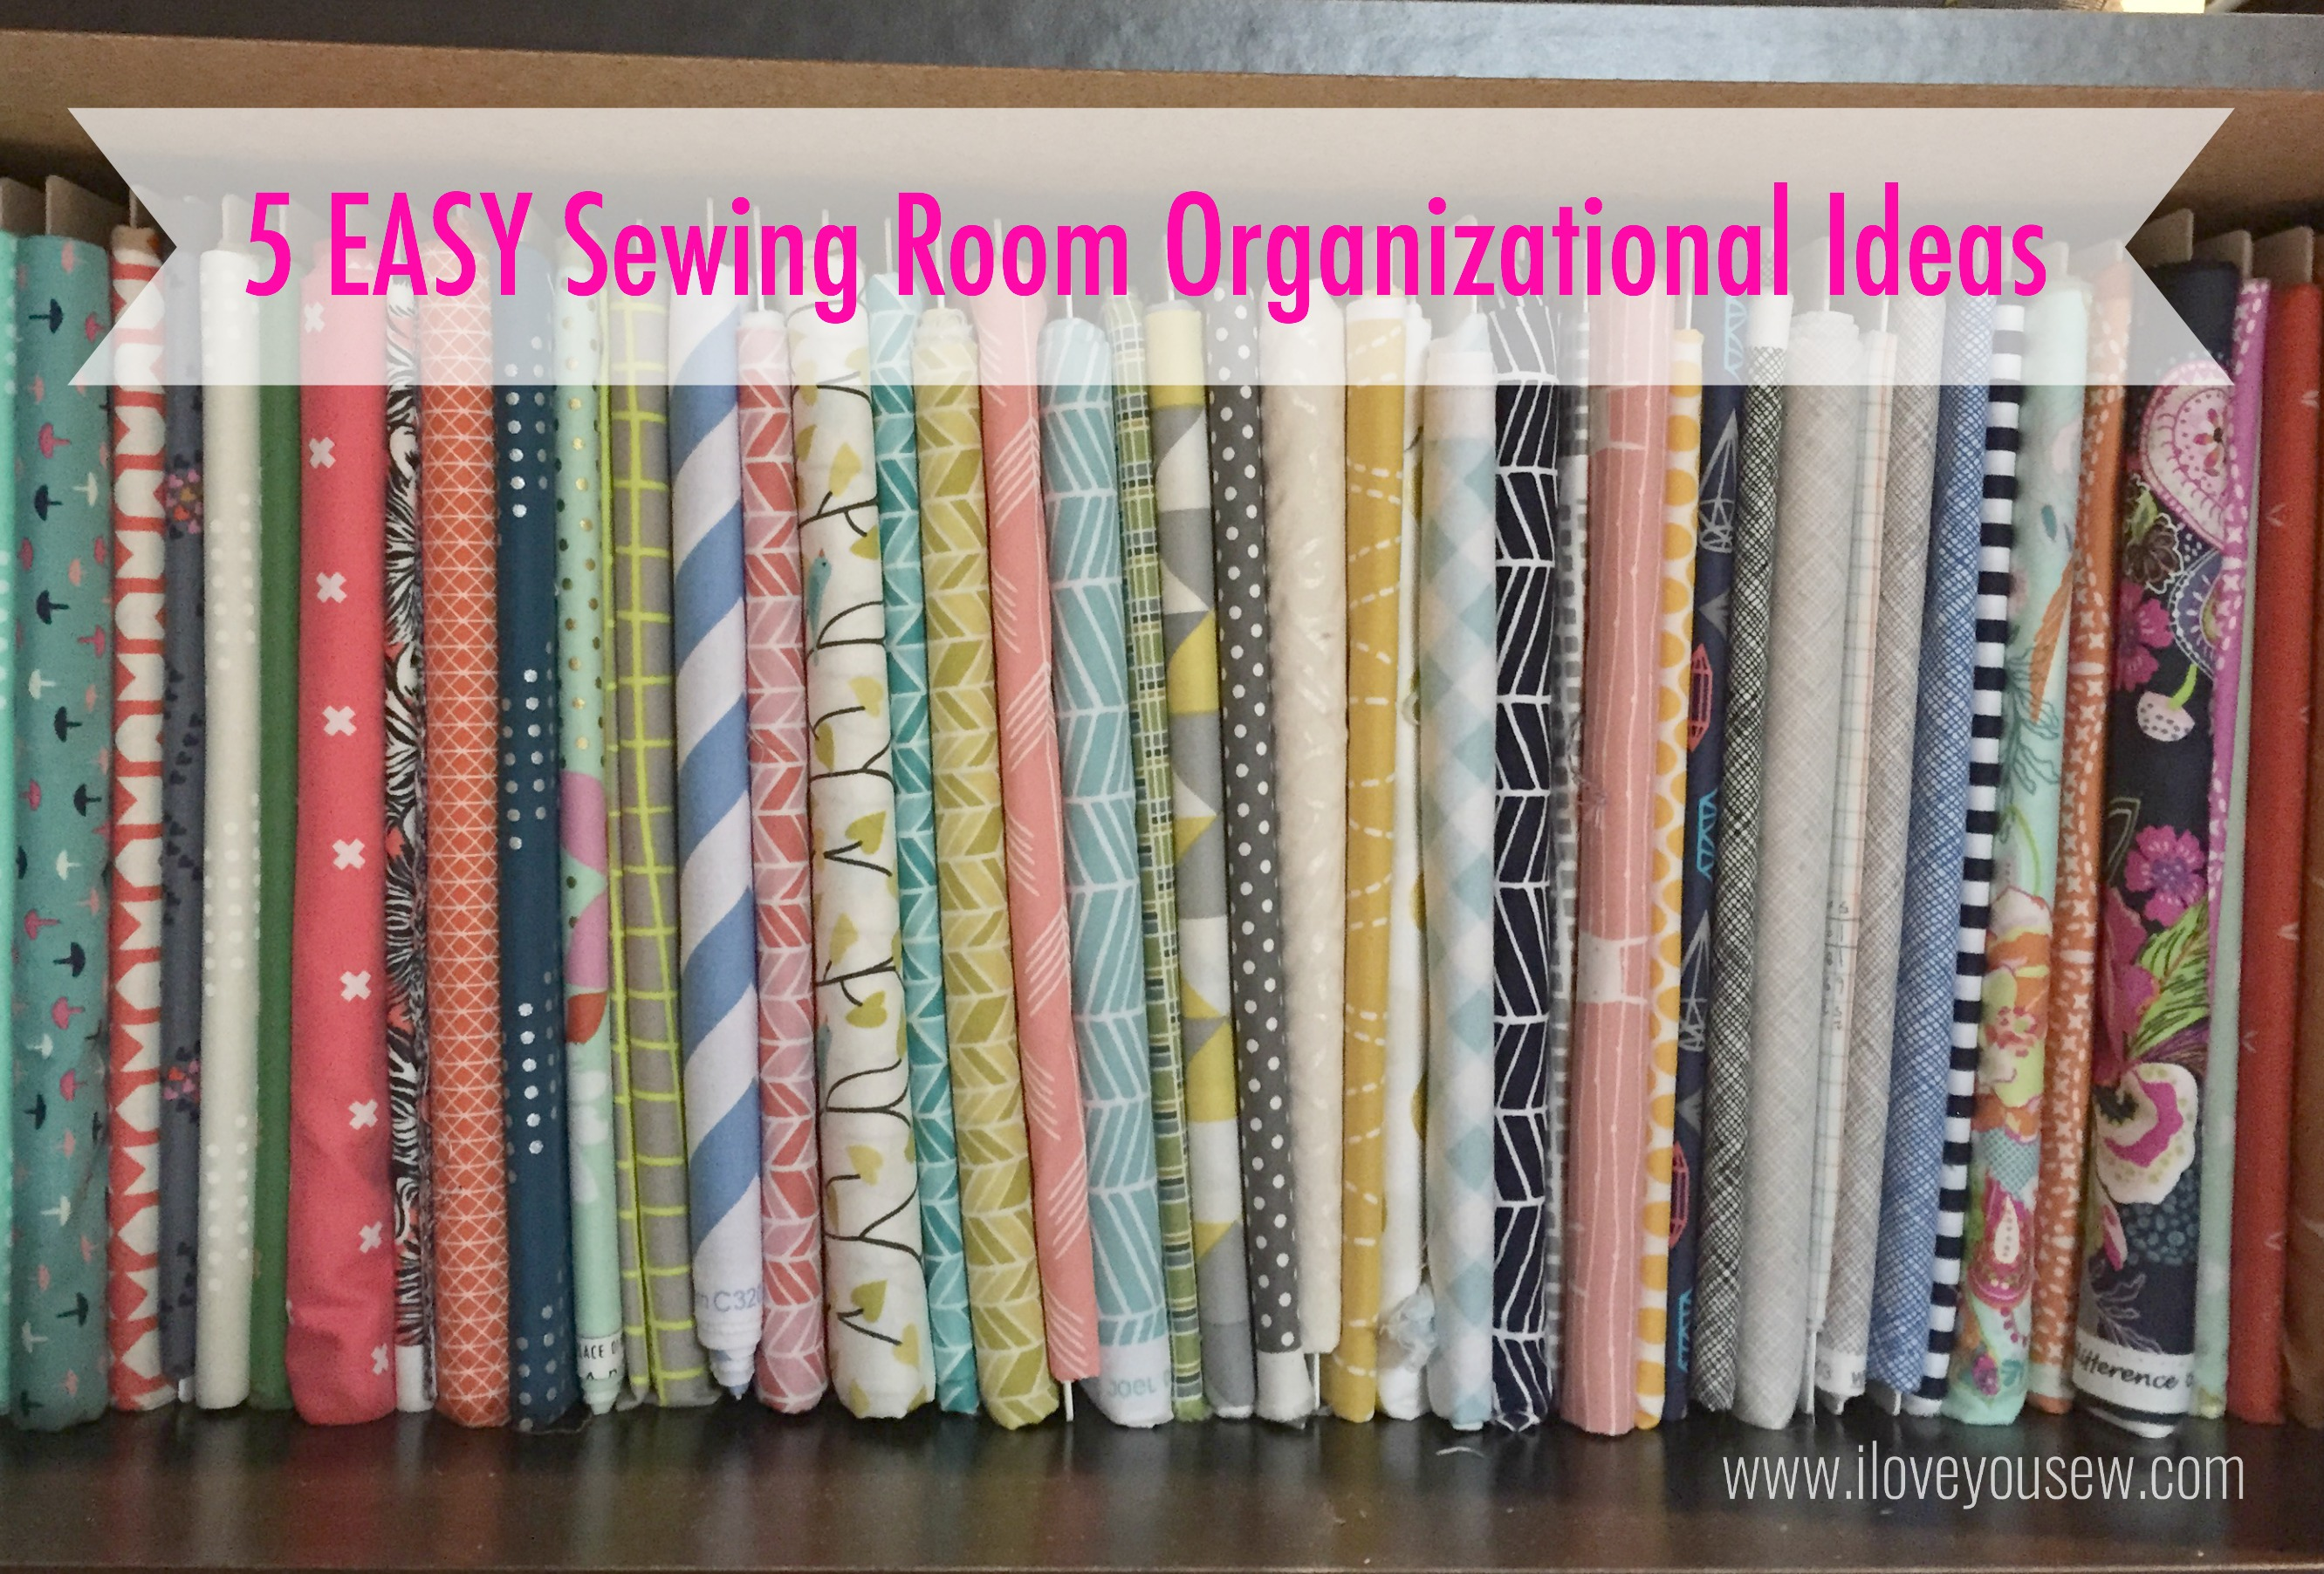 5 Easy Sewing Room Organizational Ideas